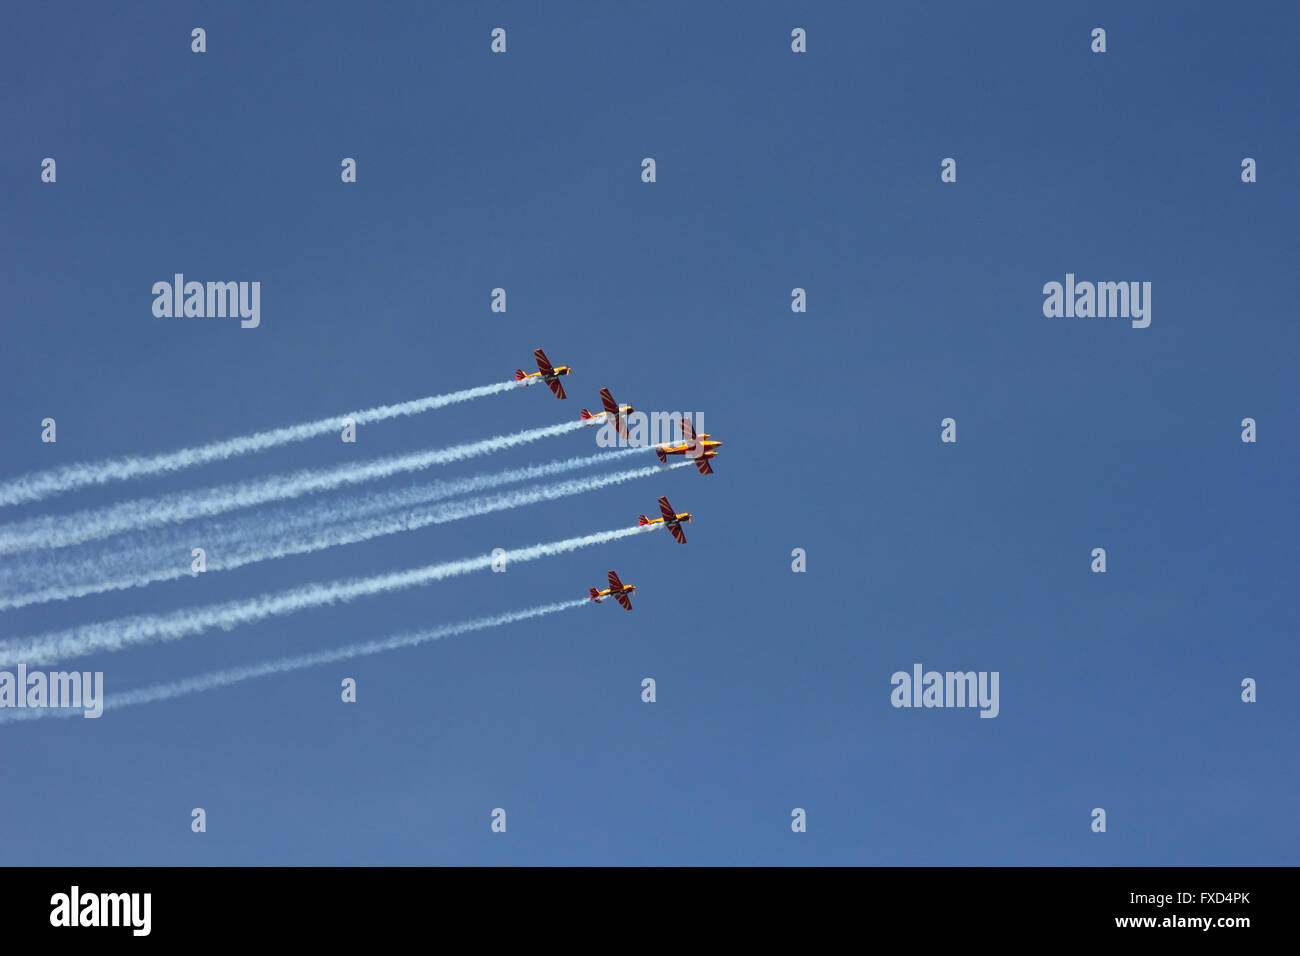 Five sporting aeroplanes photo - Stock Image